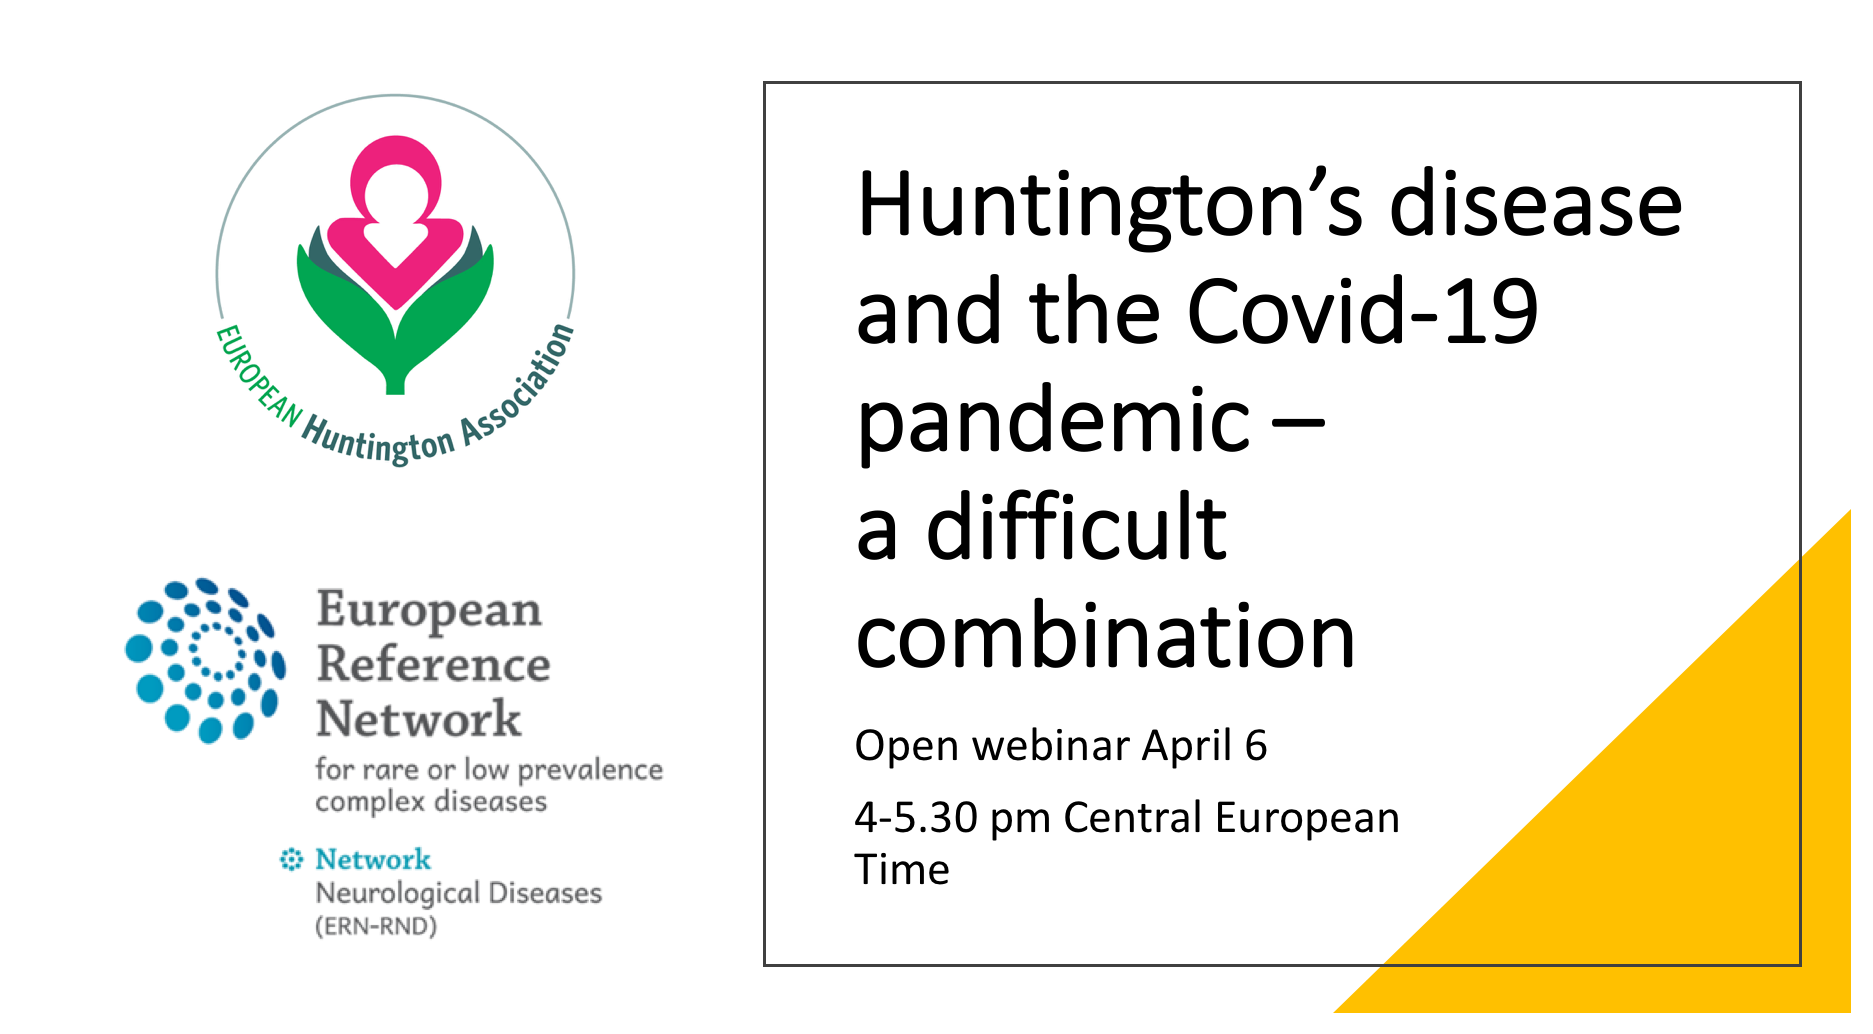 6 April Kl 16:00 – Webinar – Huntington's Disease And The Covid-19 Pandemic A Difficult Combination